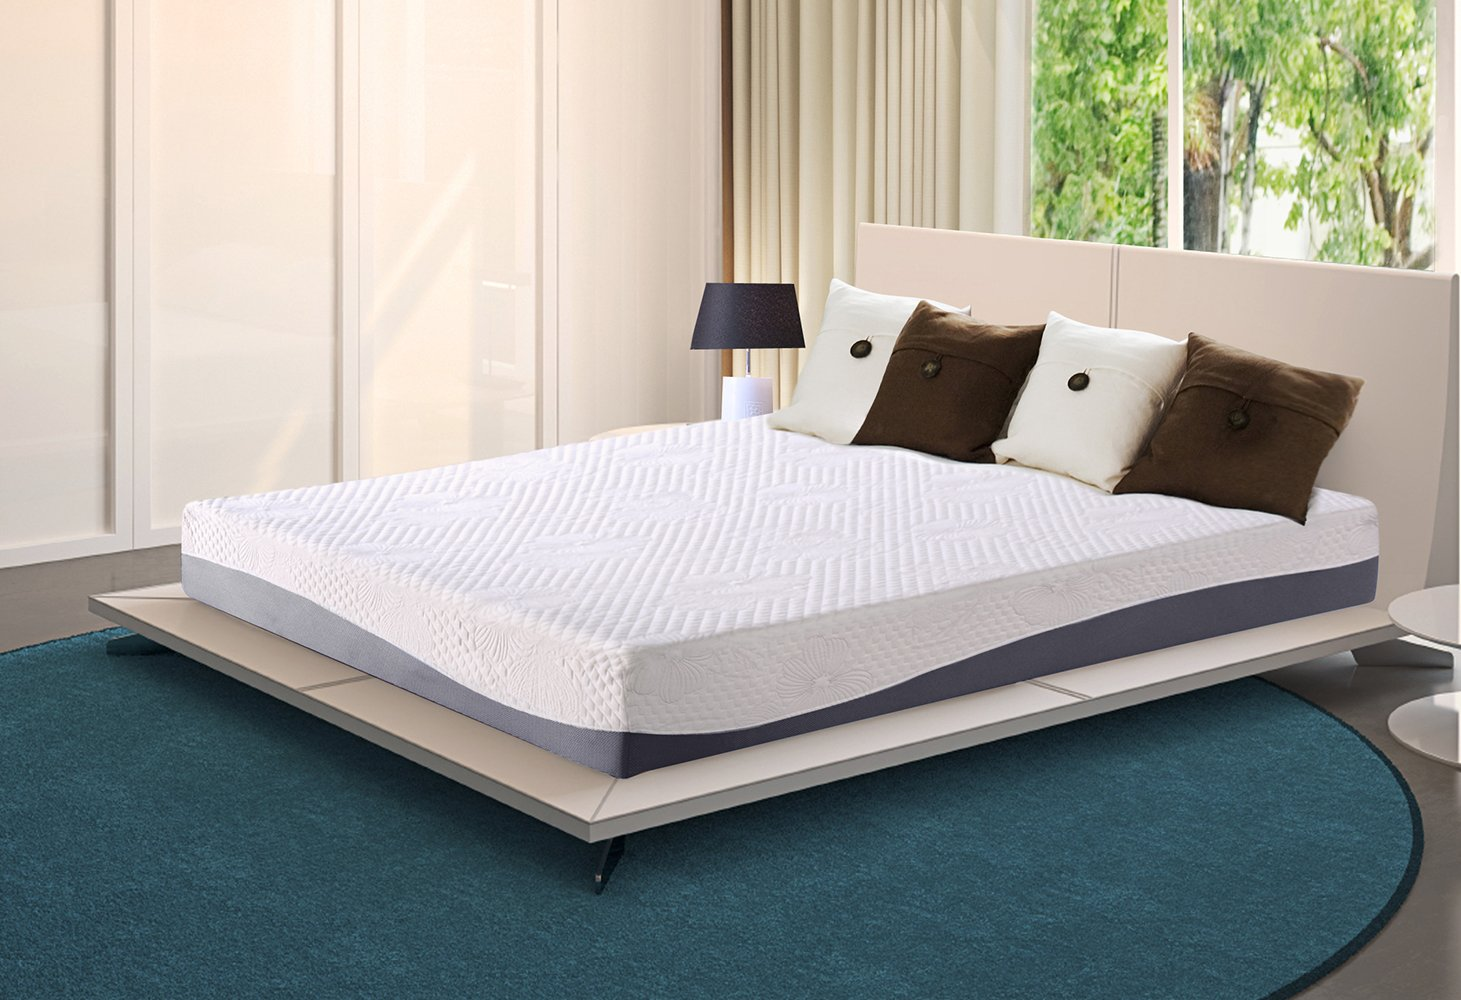 Olee Sleep 10 in Aquarius MemoryFoam Mattress Full 10FM02F